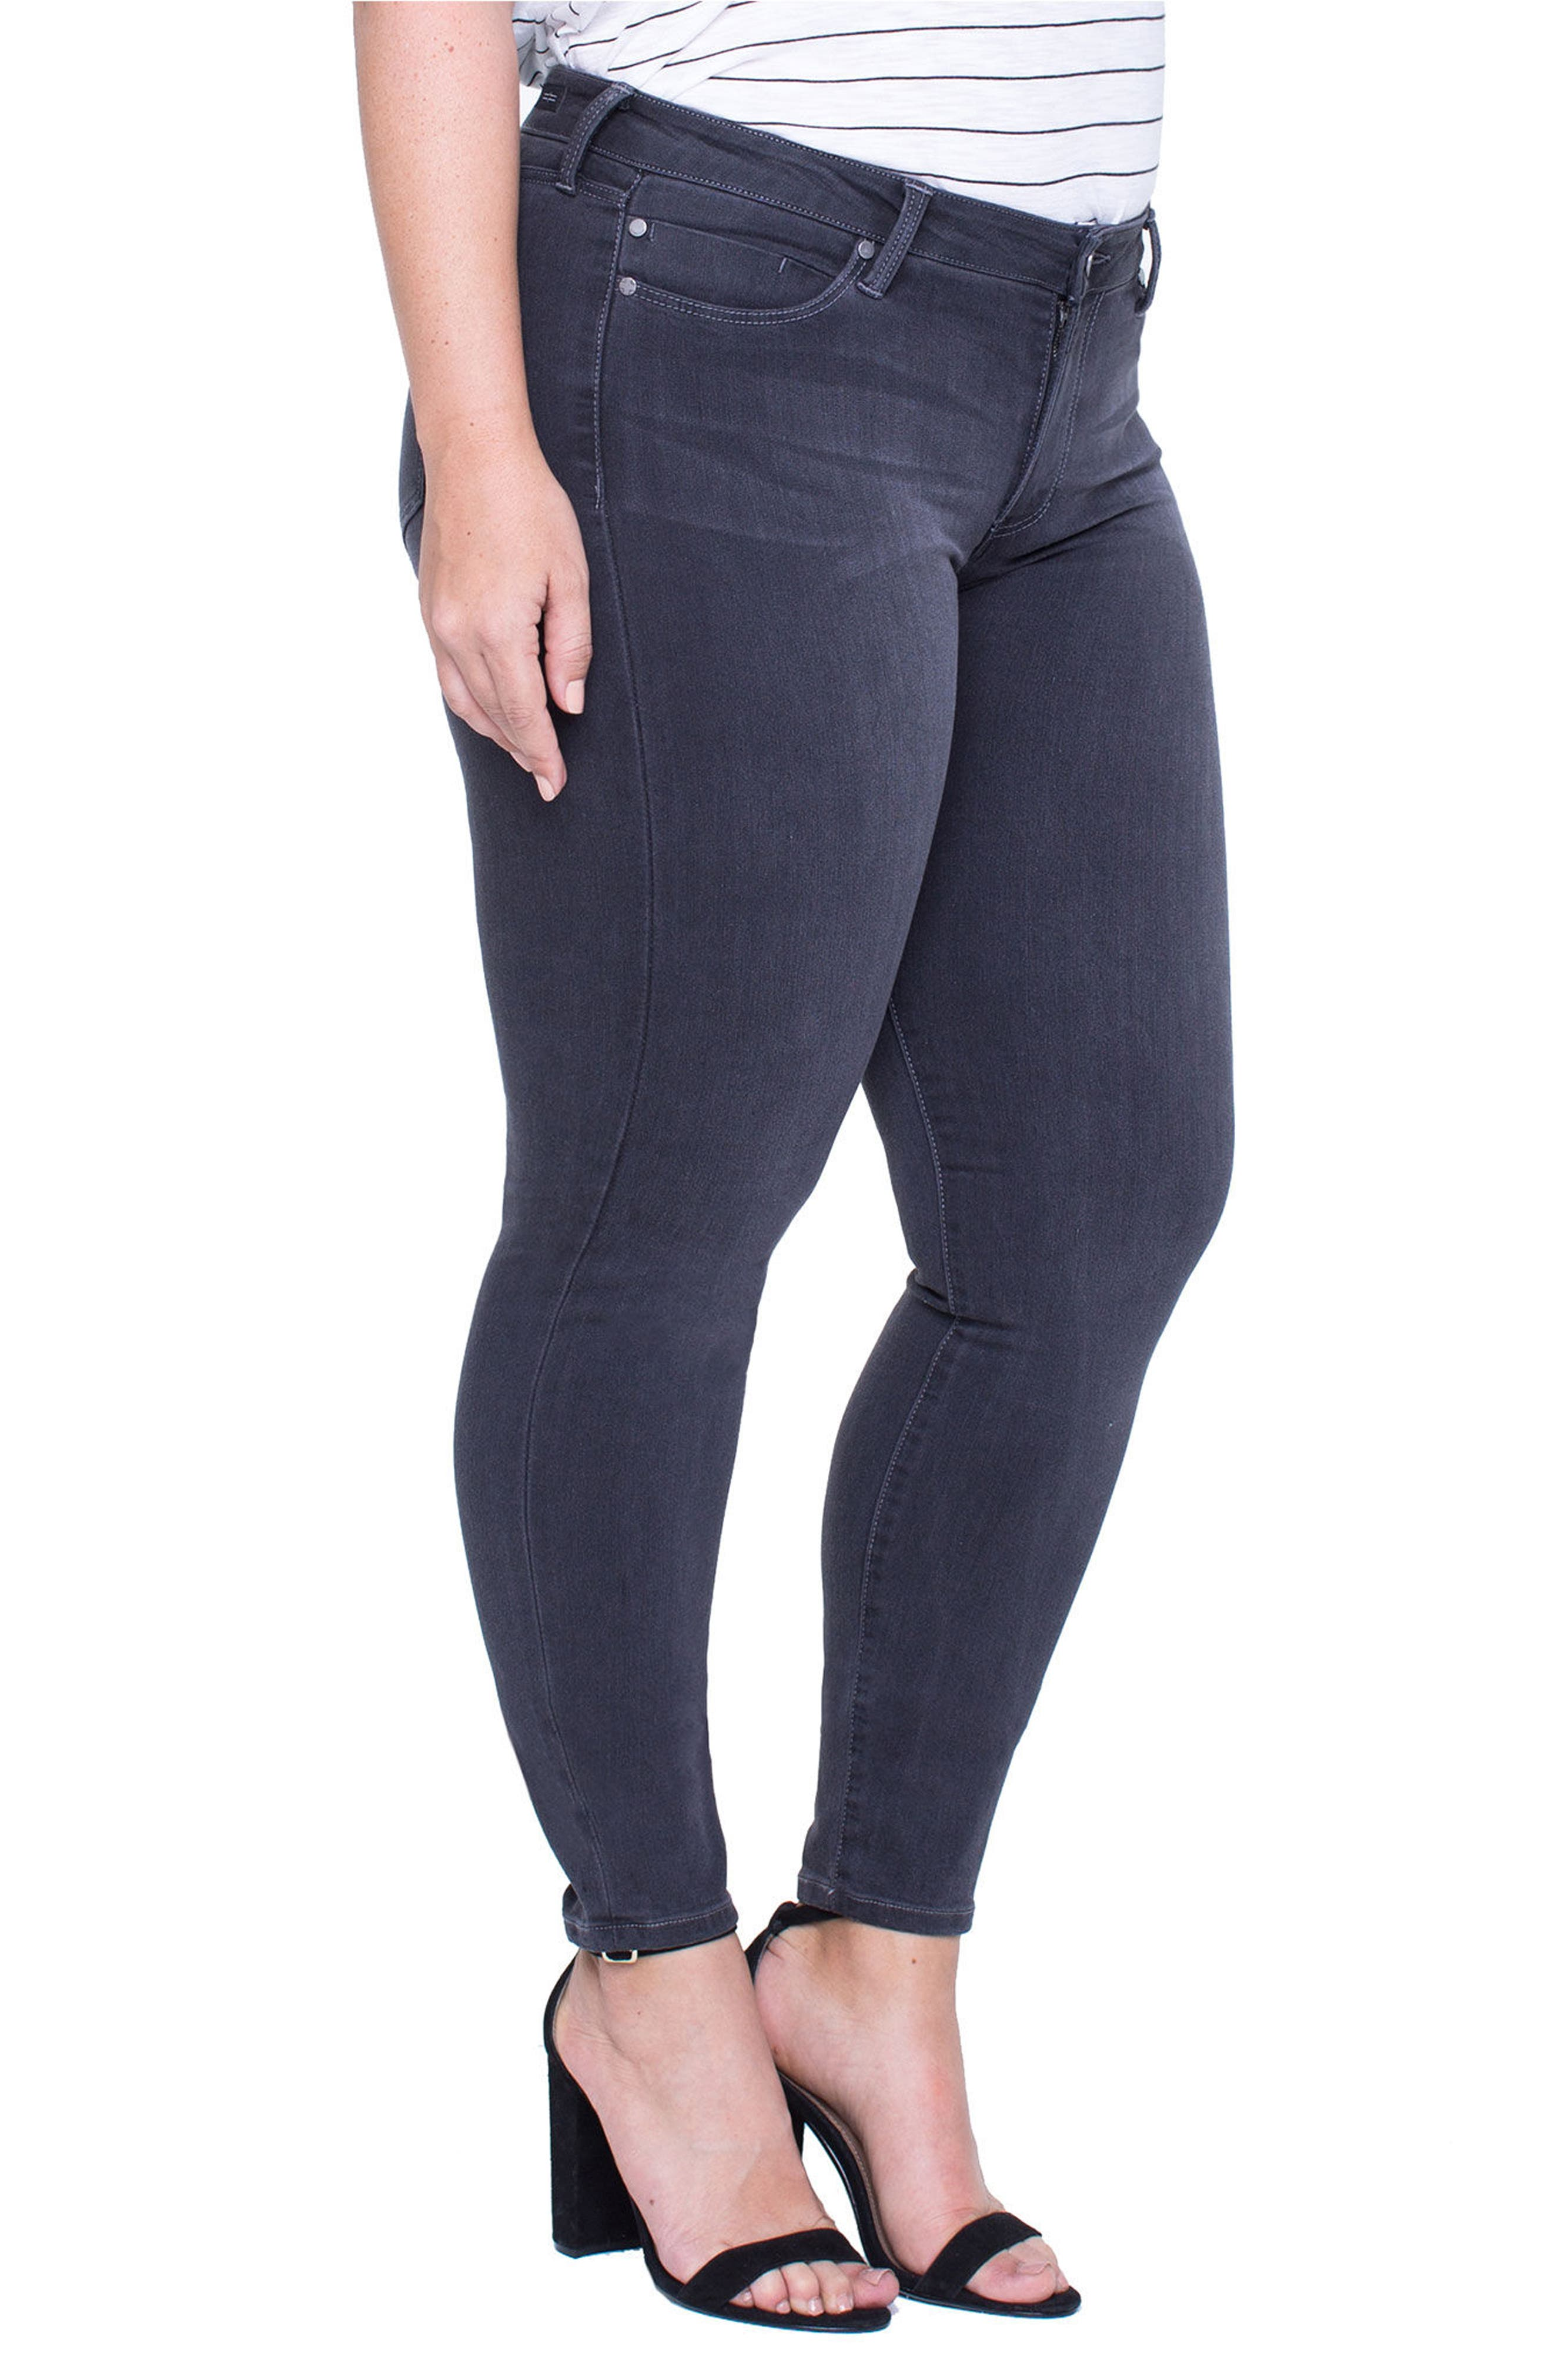 Abby Stretch Skinny Jeans,                             Alternate thumbnail 4, color,                             Meteorite